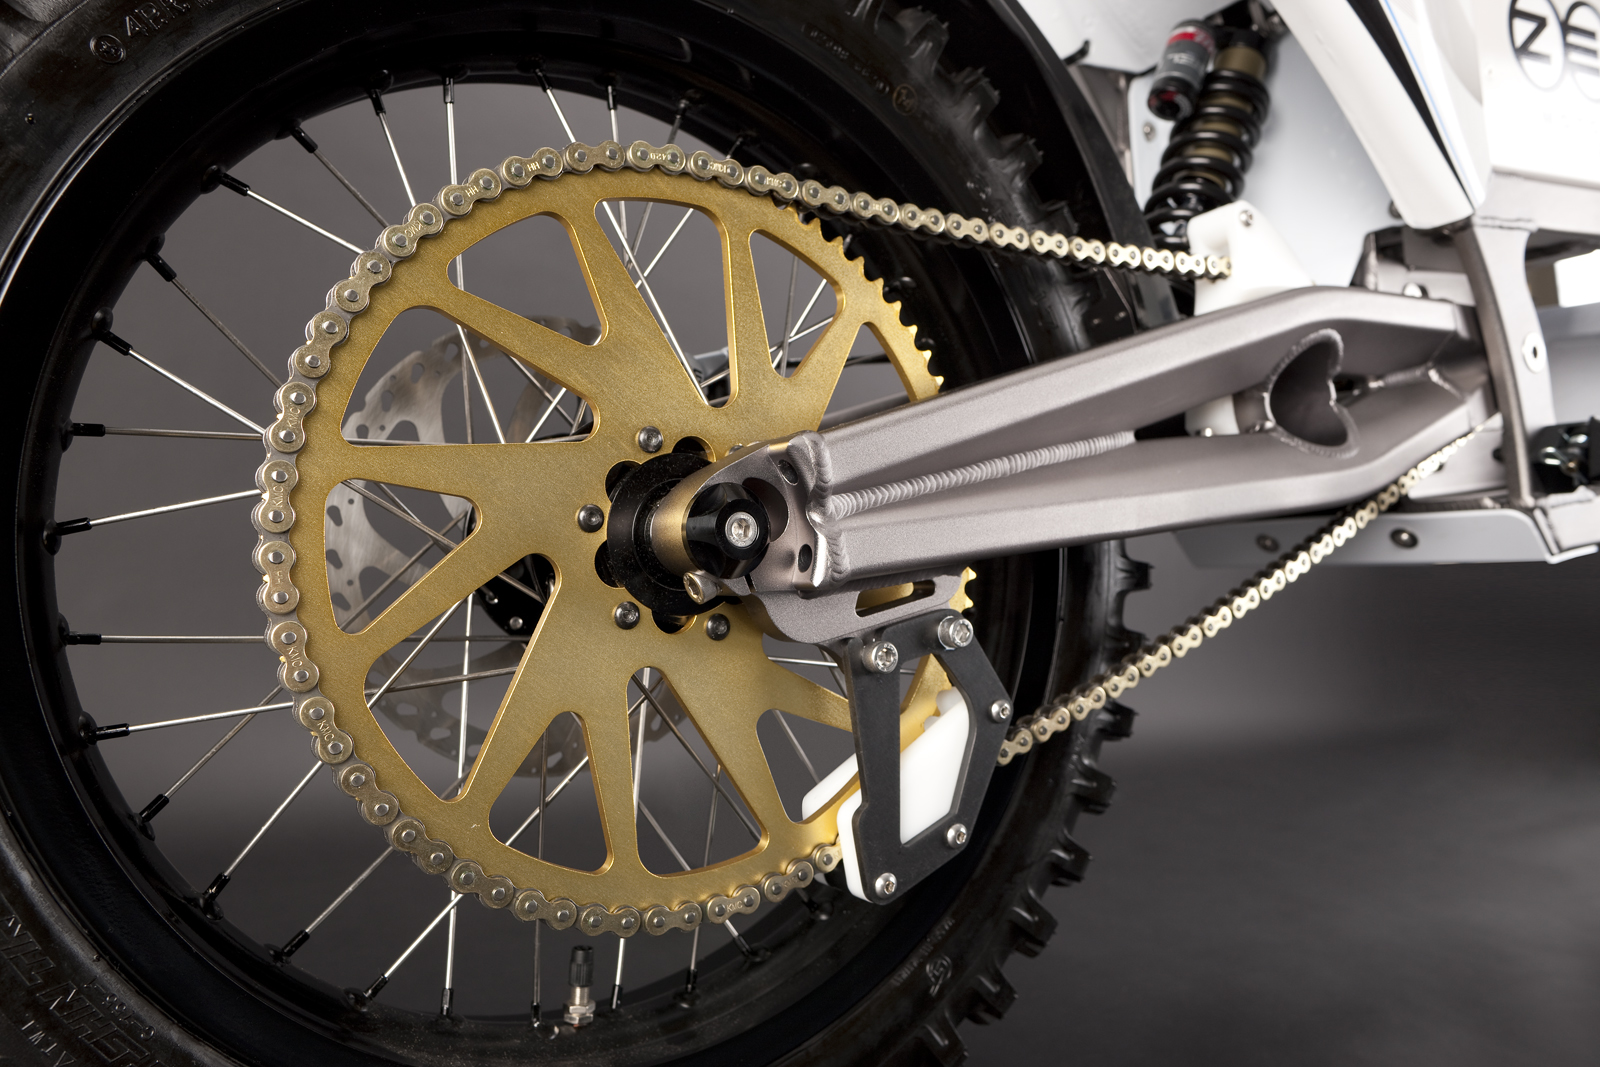 2010 Zero X Electric Motorcycle: Rear Tire / Rear Shock